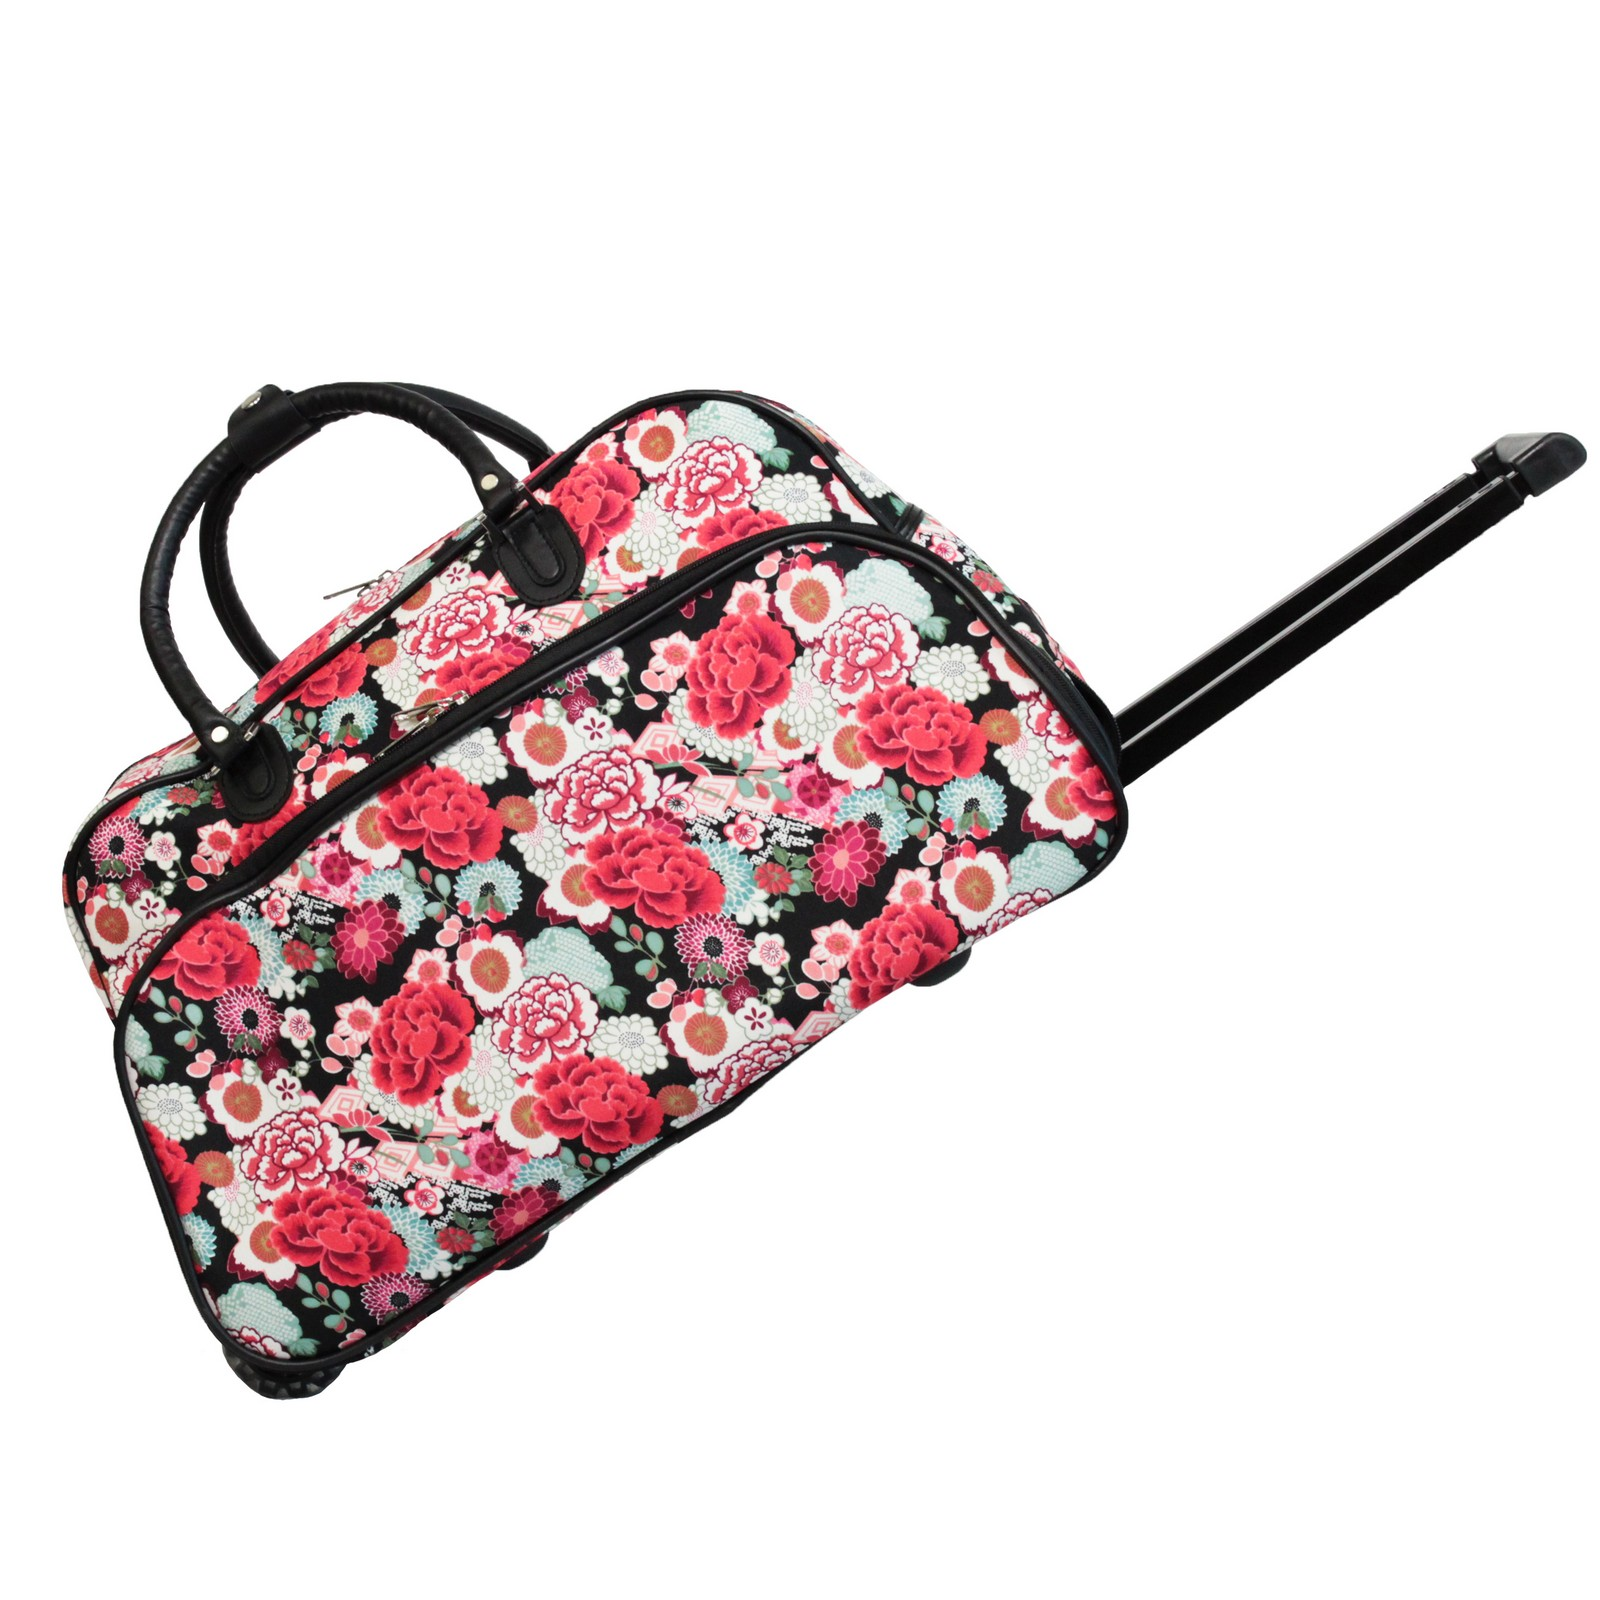 World Traveler Flowers 21-inch Carry-On Rolling Duffle Bag | EBay